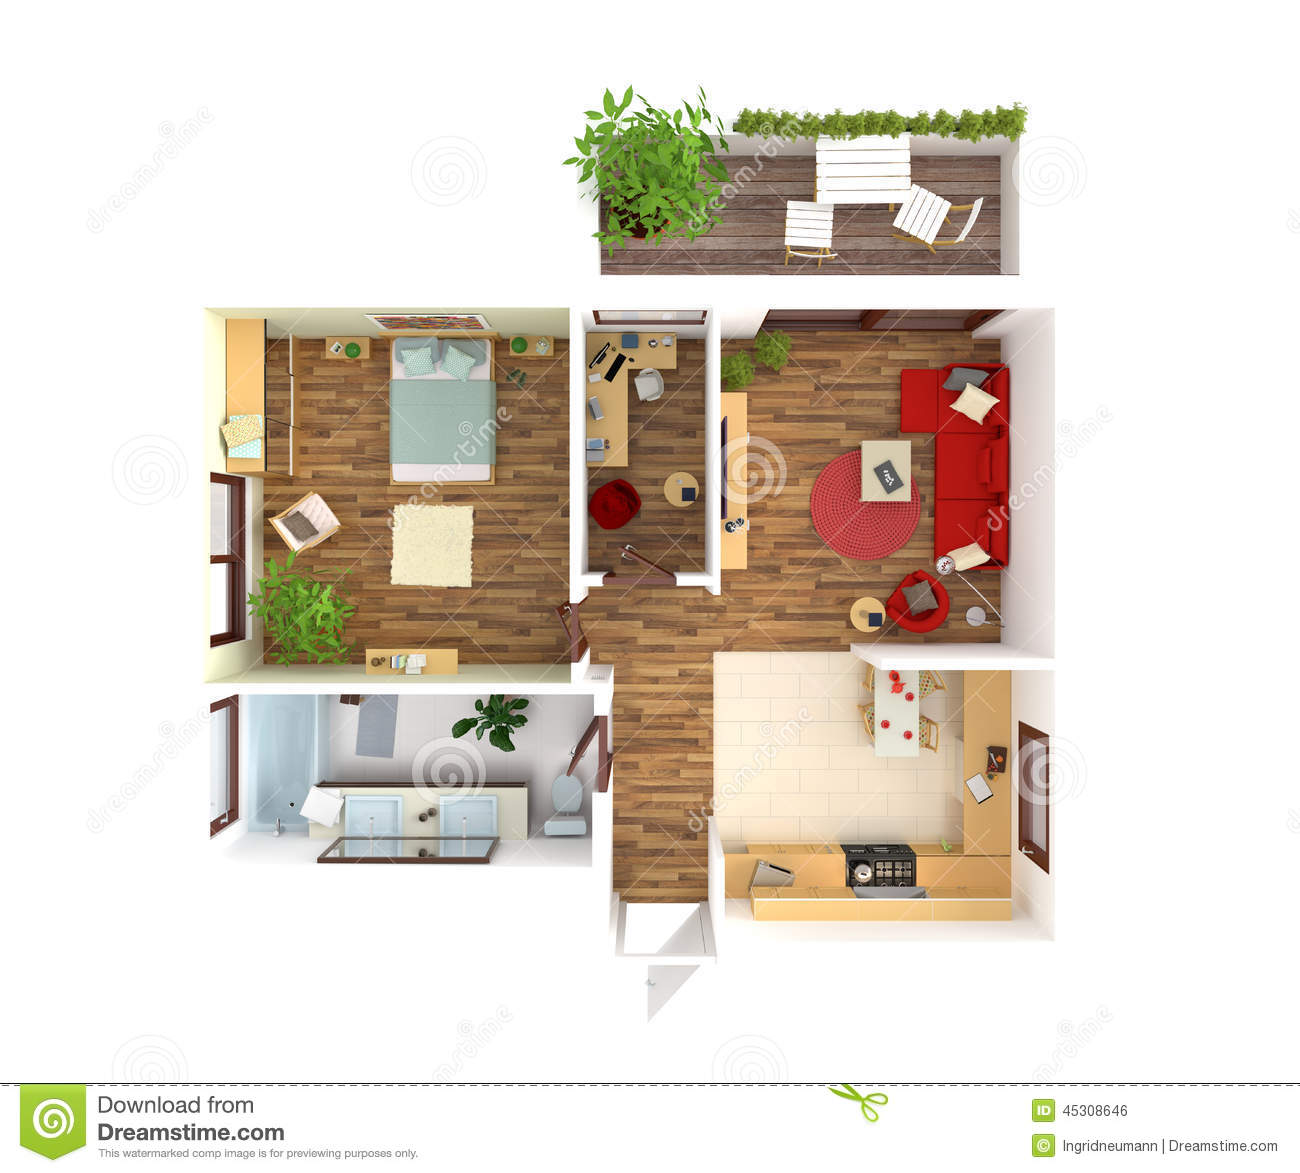 3D Design. 3D Kitchen From Top View photo - 1